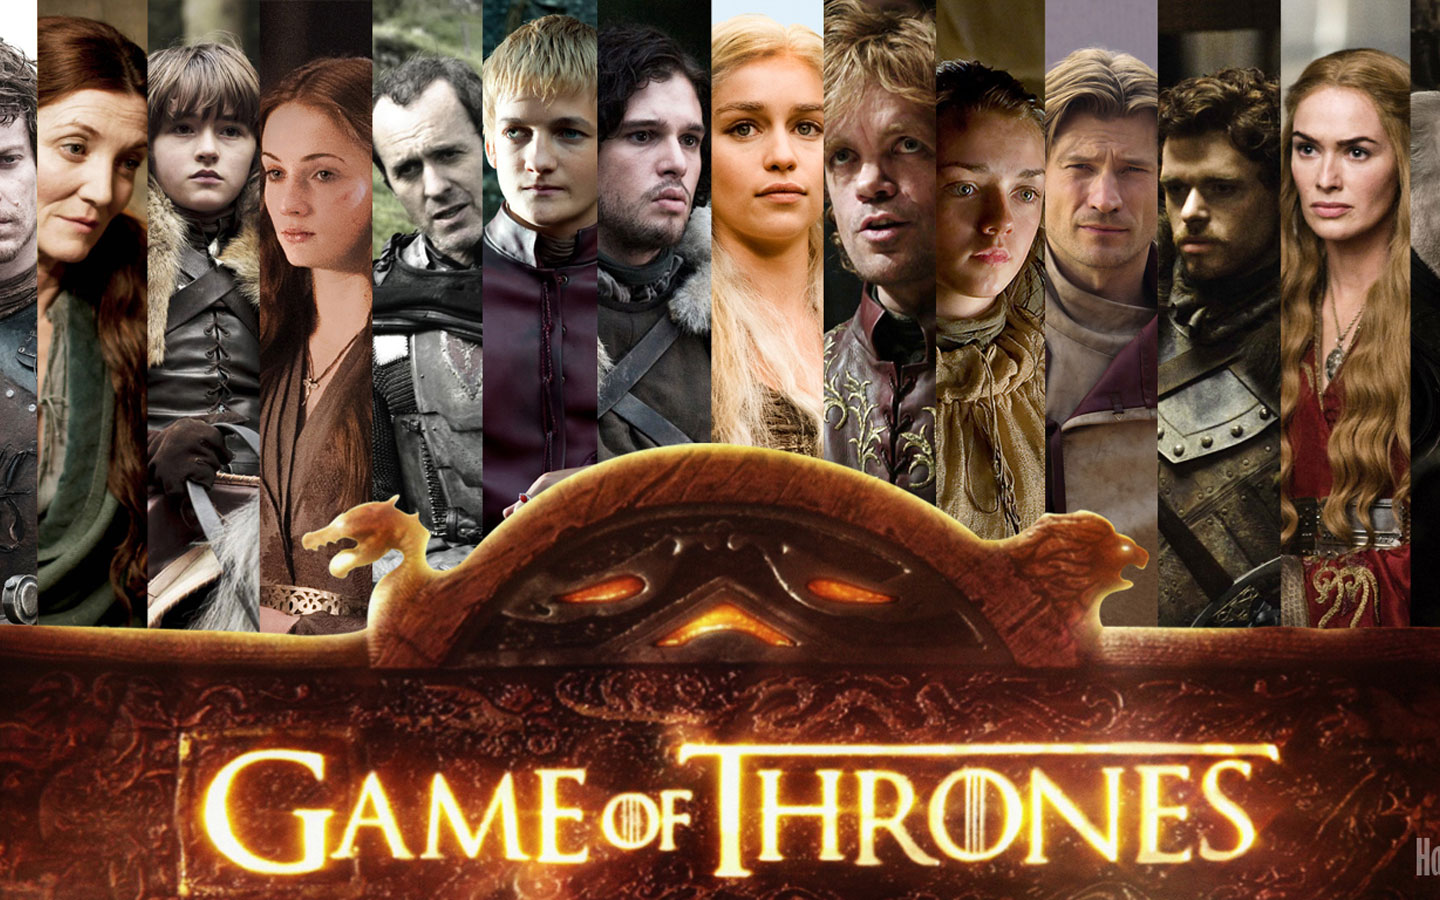 'Game Of Thrones' Season 5, Episode 4 Ends With A Bang | Crooks and Liars